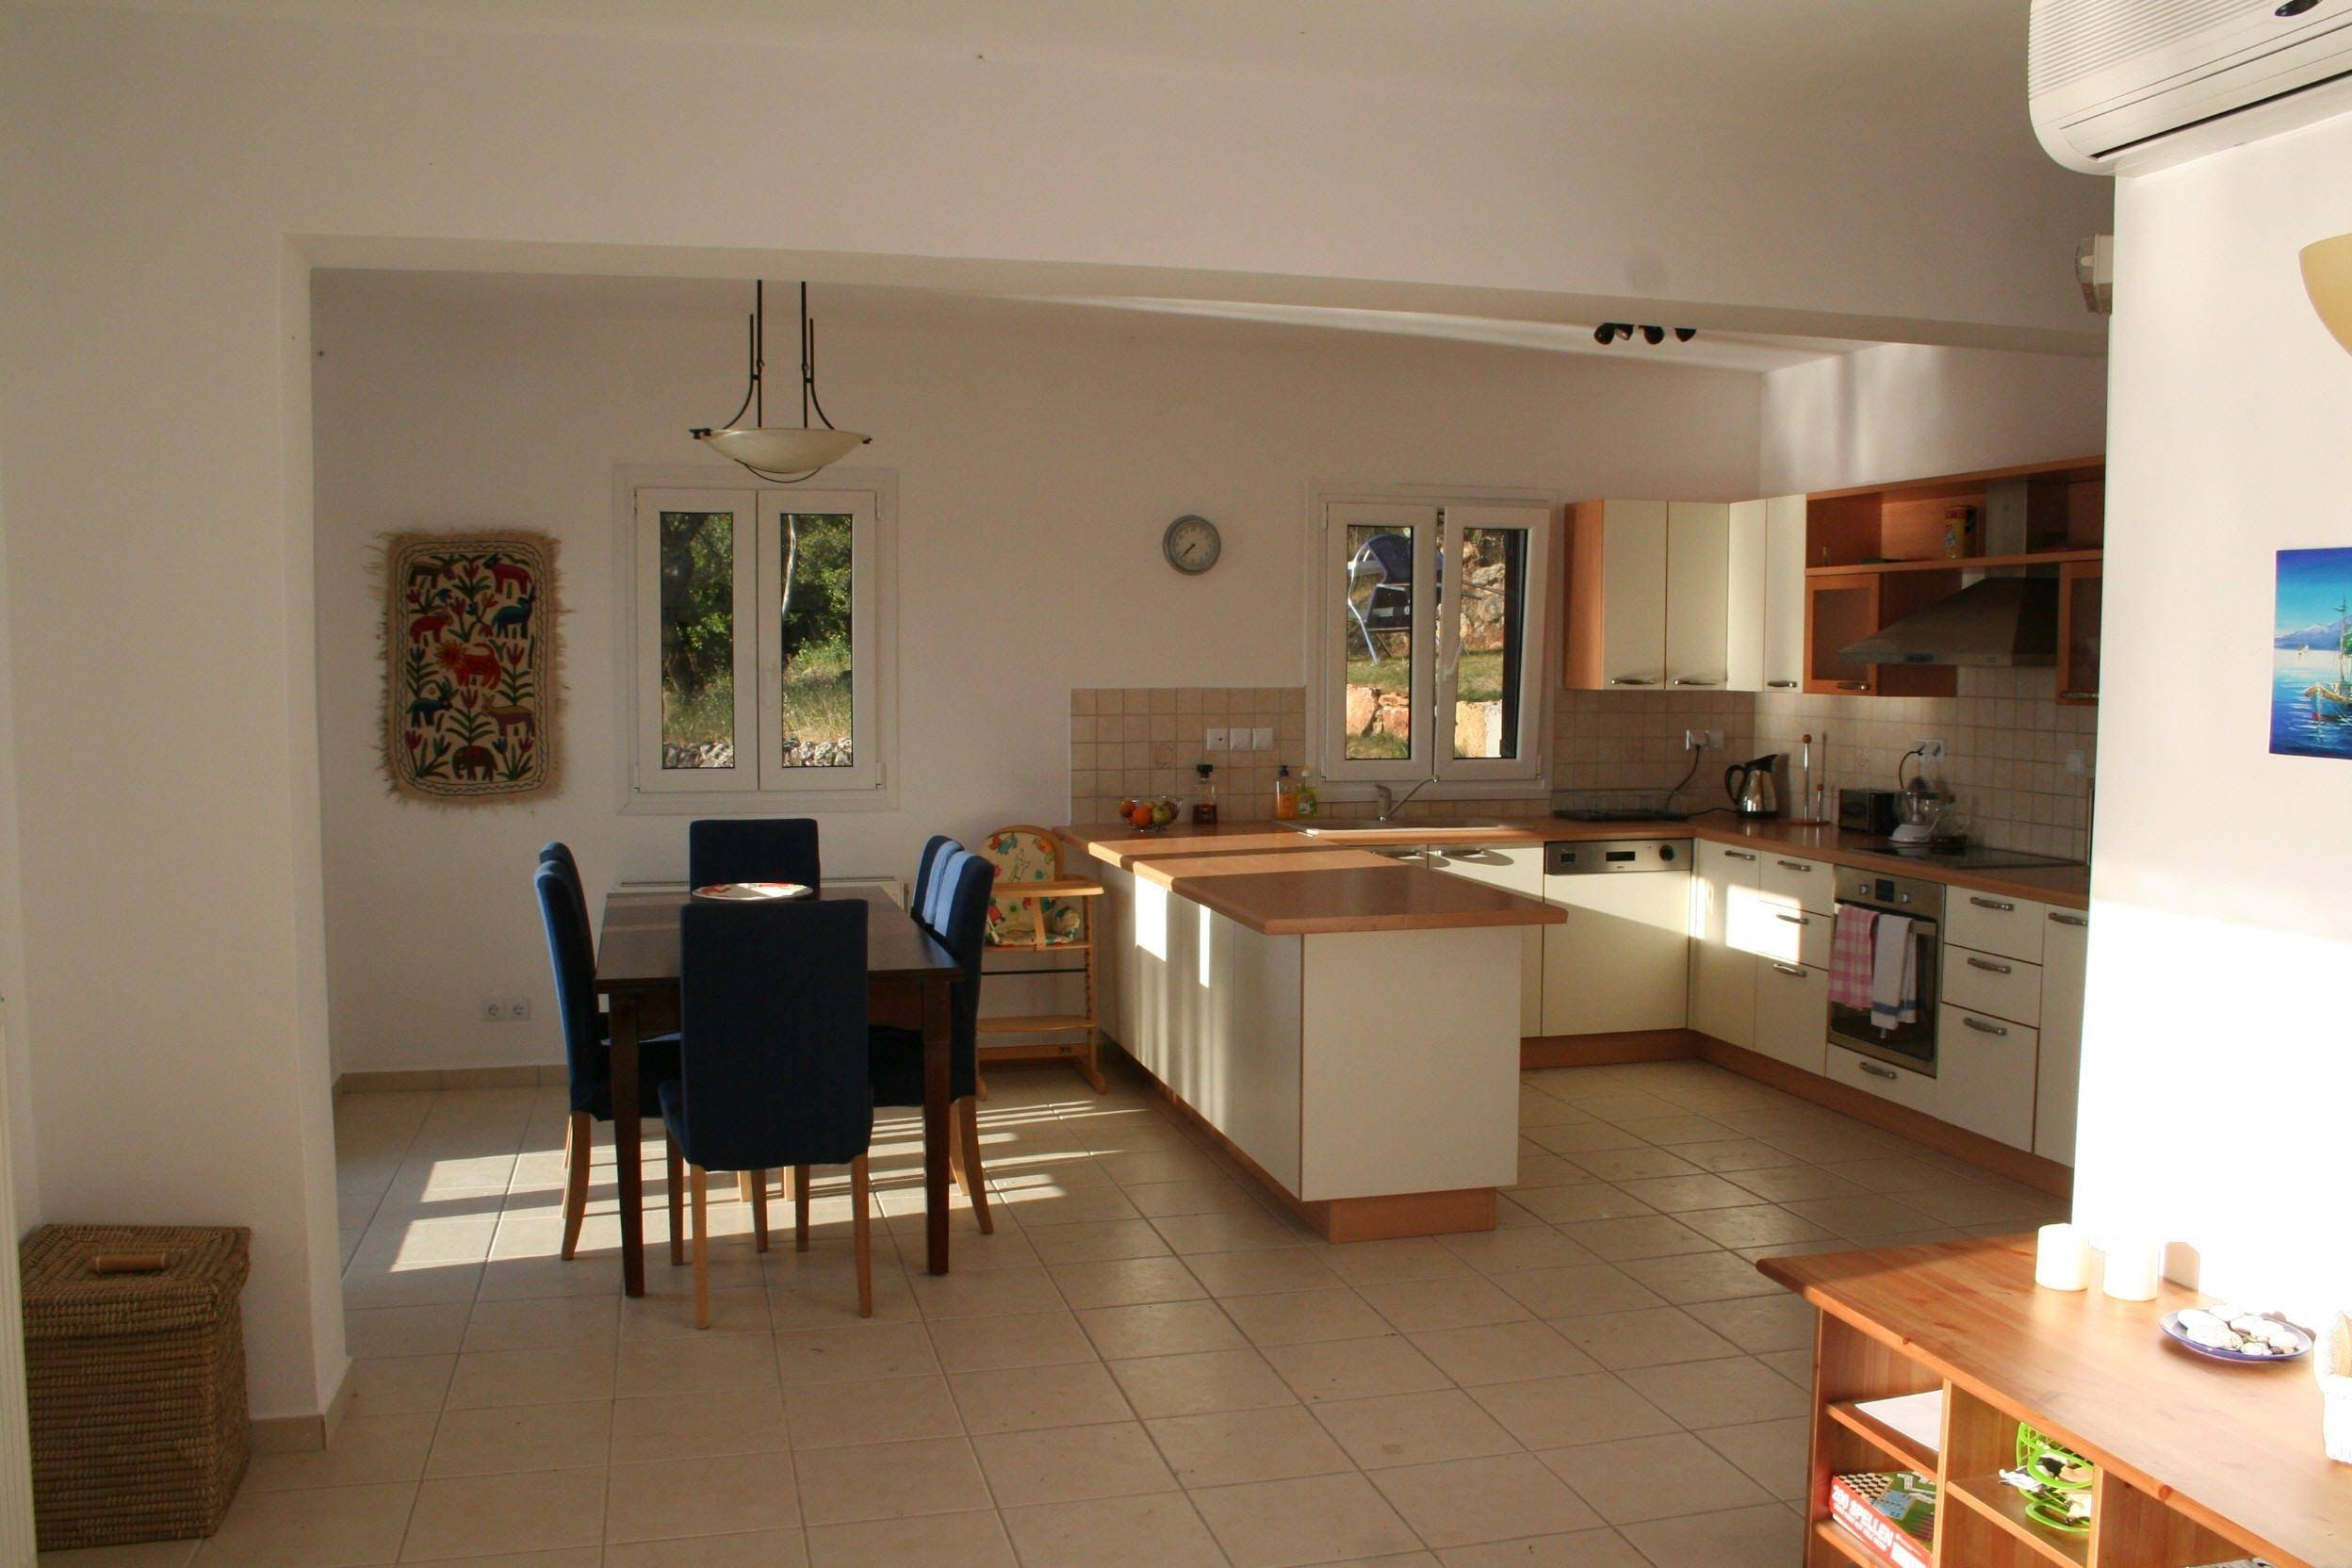 Open Plan Kitchen Dining Room Designs Ideas Home Design - House